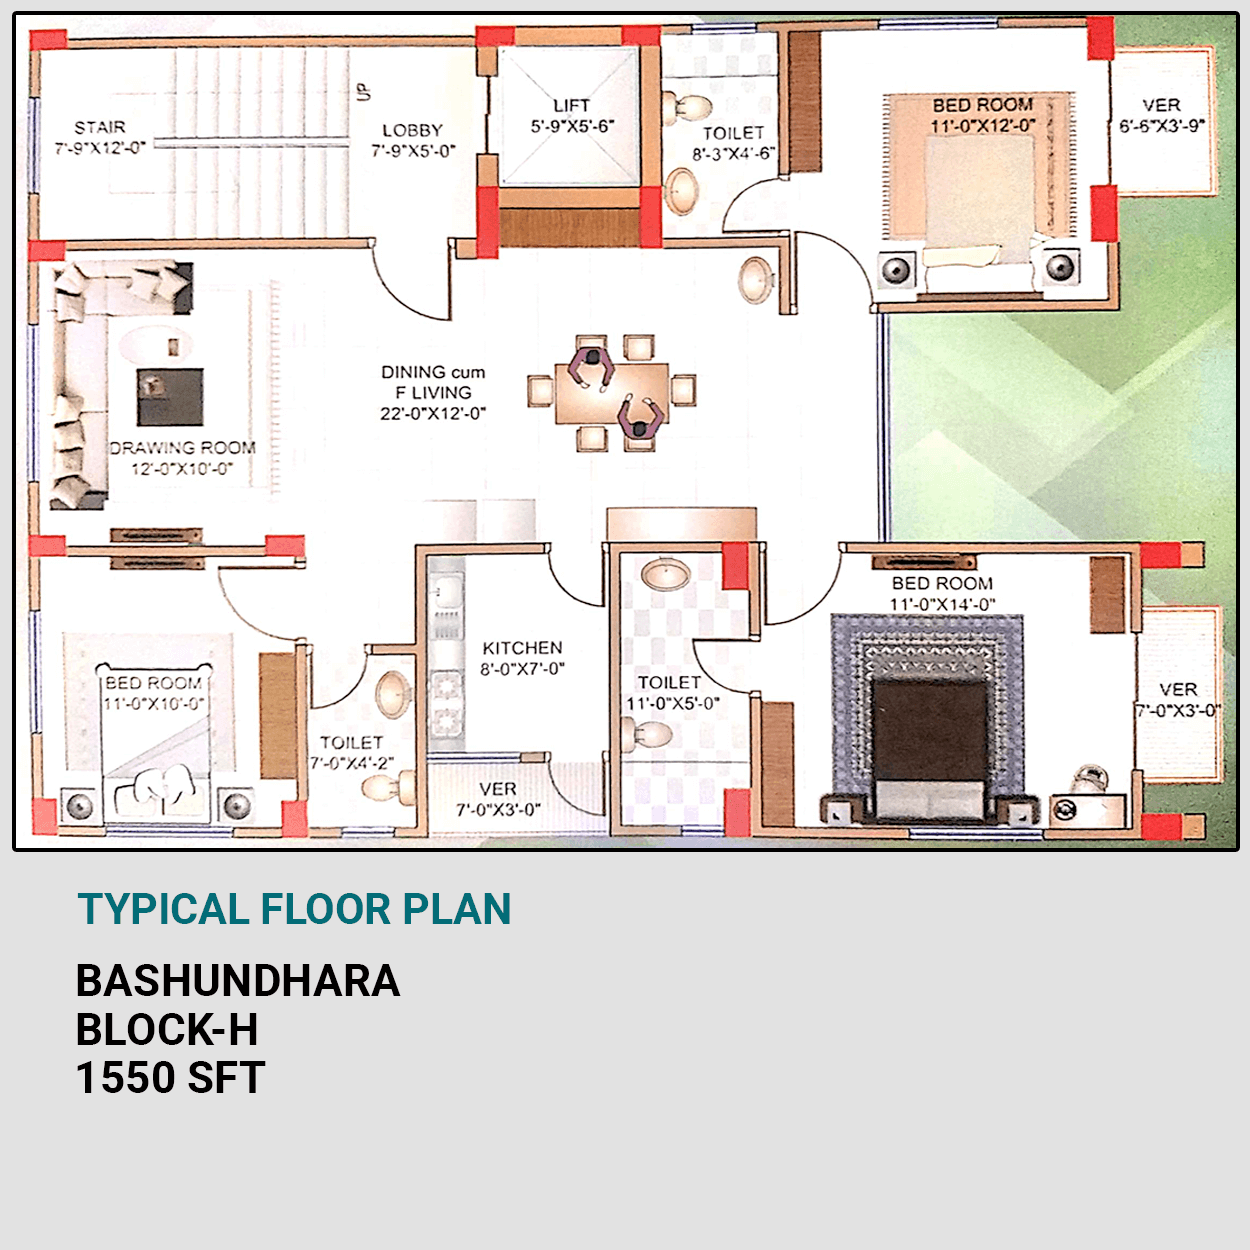 Exclusive 1550 sft 3 Bed Flat For Sale at Bashundhara